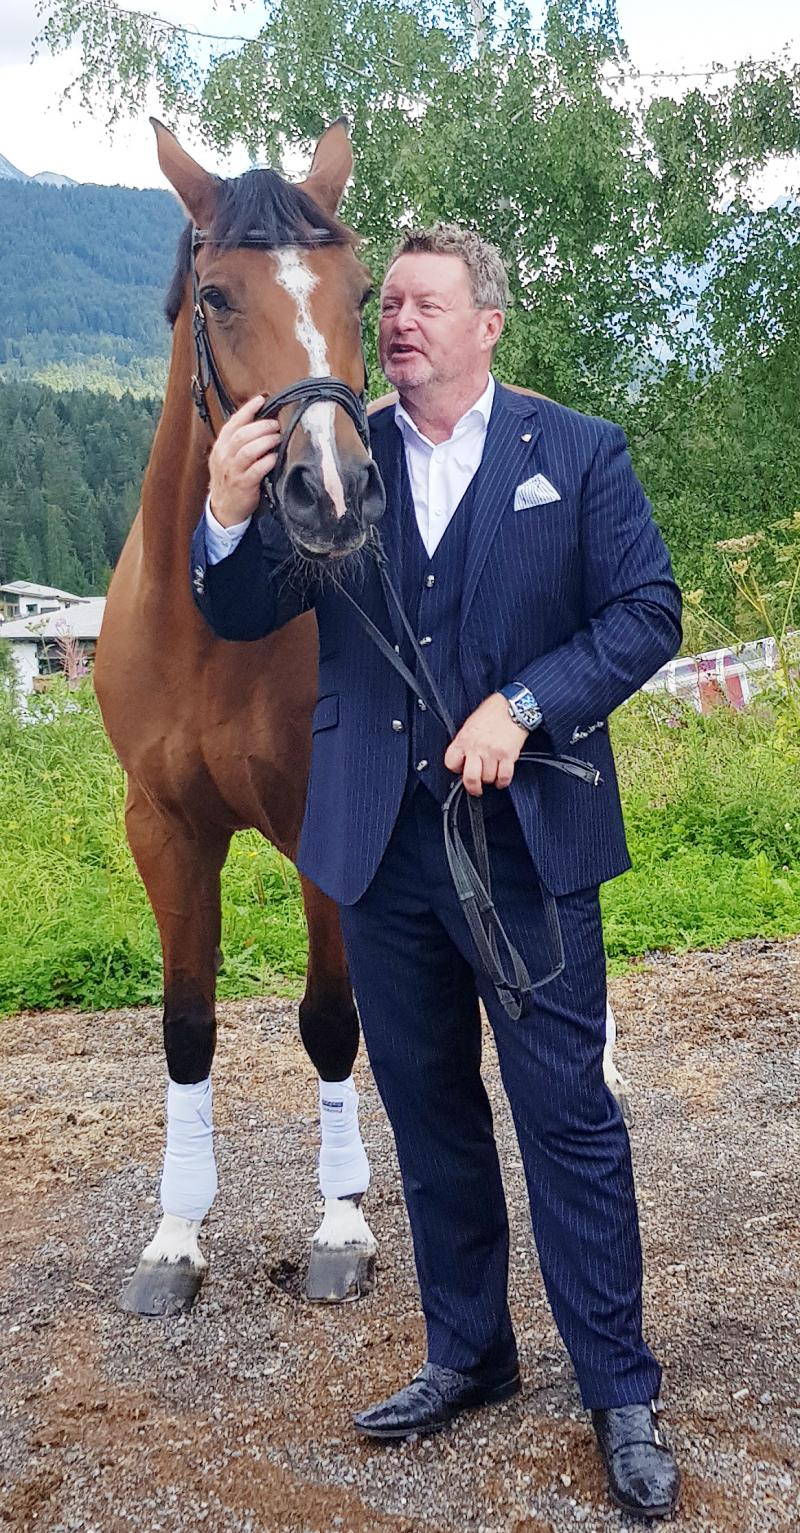 Christian Jäger and the horse sports